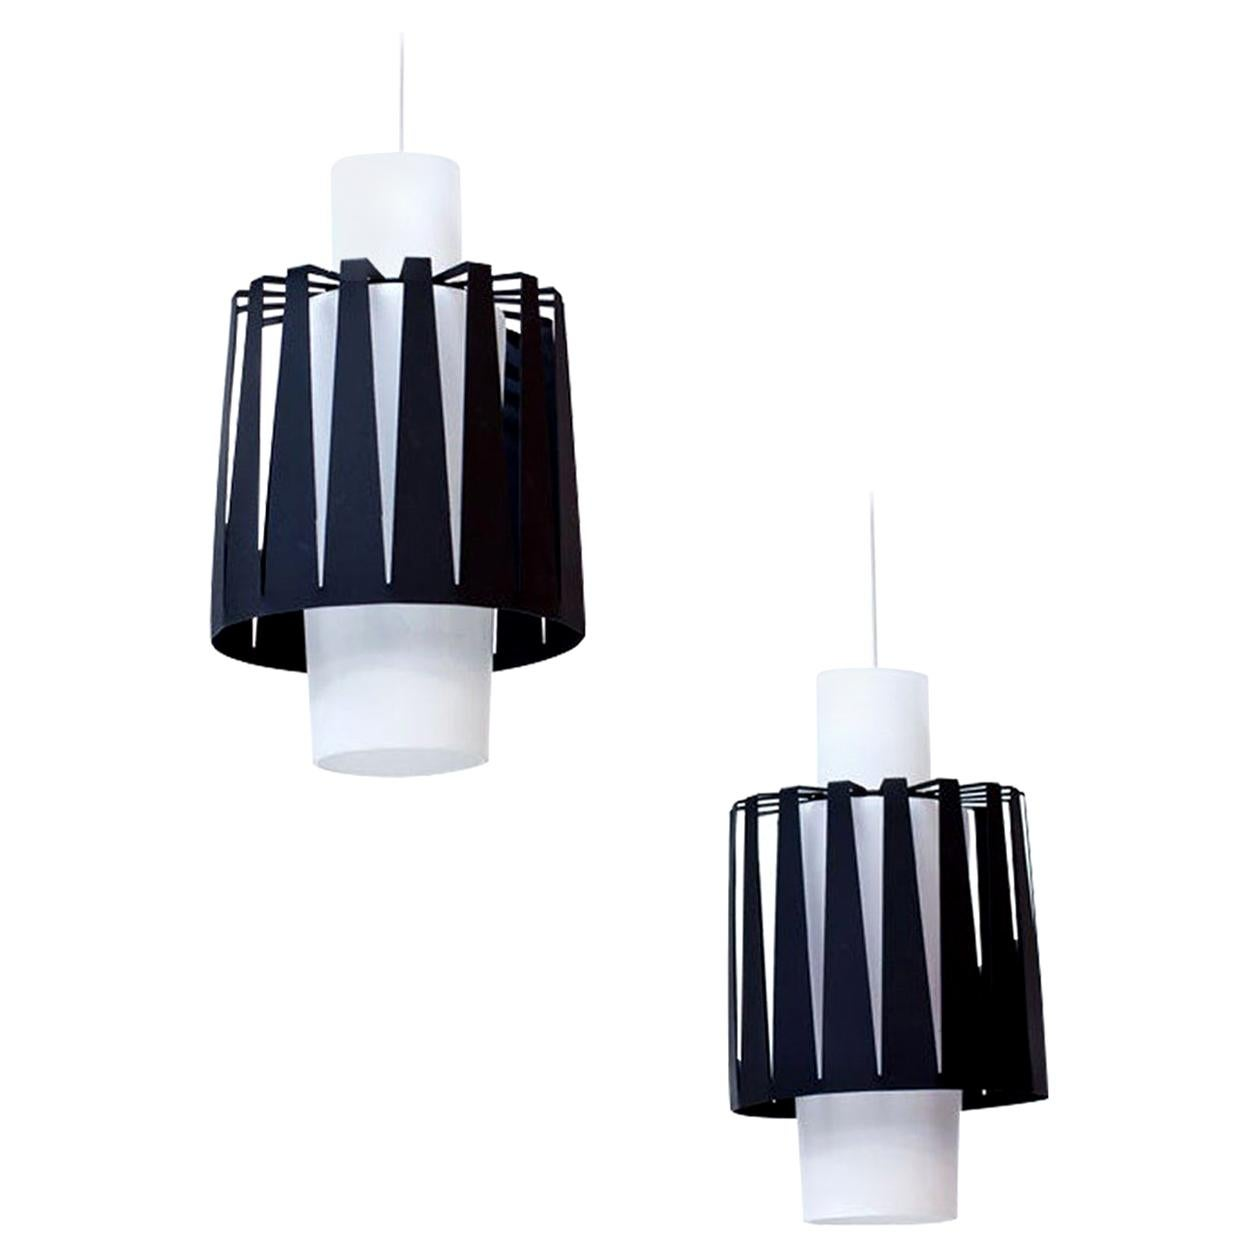 Opaline Glass and Metal Pendant Lamps by ASEA, Sweden, 1950s